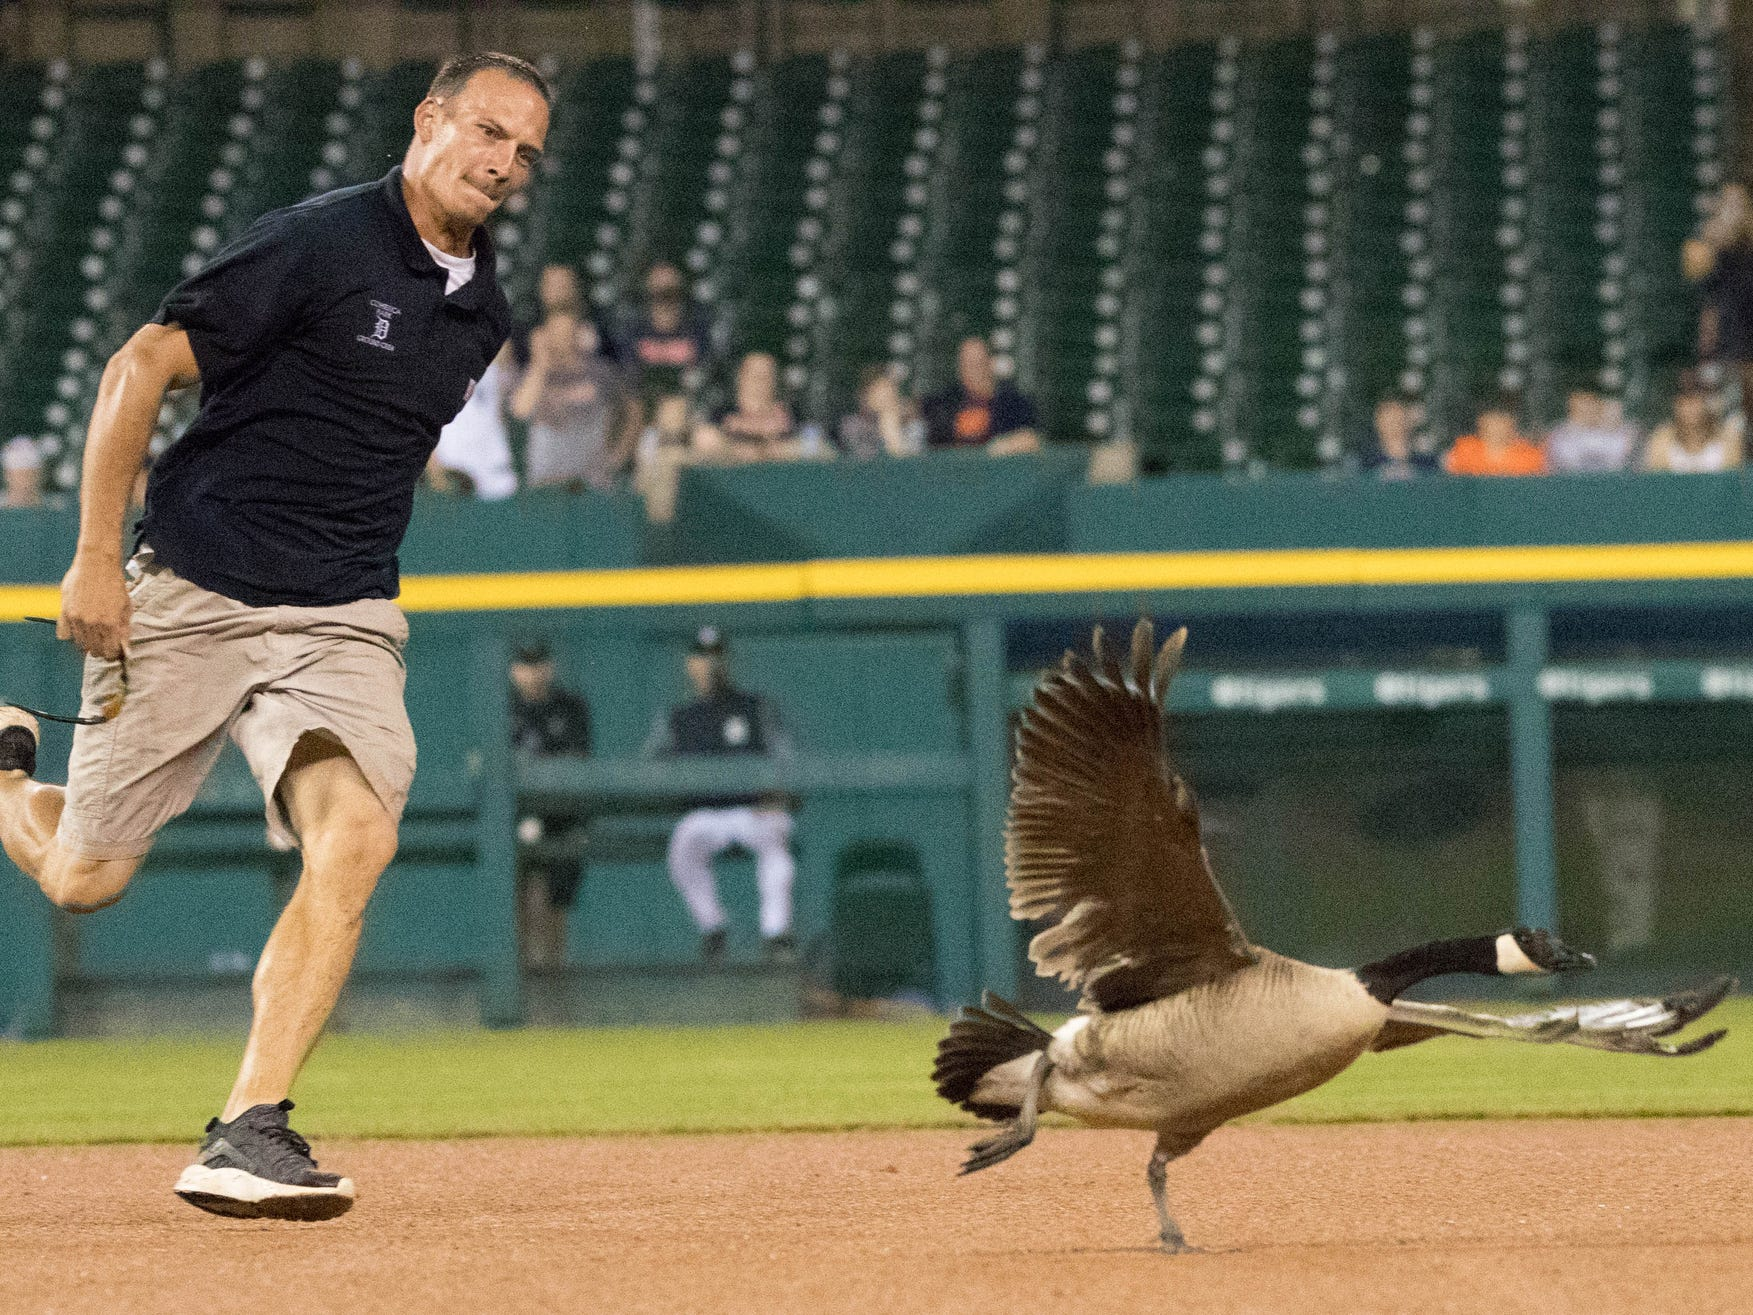 A Canadian Goose lnaded on the field during the rain delay of Detroit Tigers vs. Los Angeles Angels game grounds crew chased the goose off the field while trying to fly out of the stadium it hit a scoreboard and fell into the crowd where a fan assisted Wednesday, May 30, 2018, Comerica Park in Detroit, Mich.